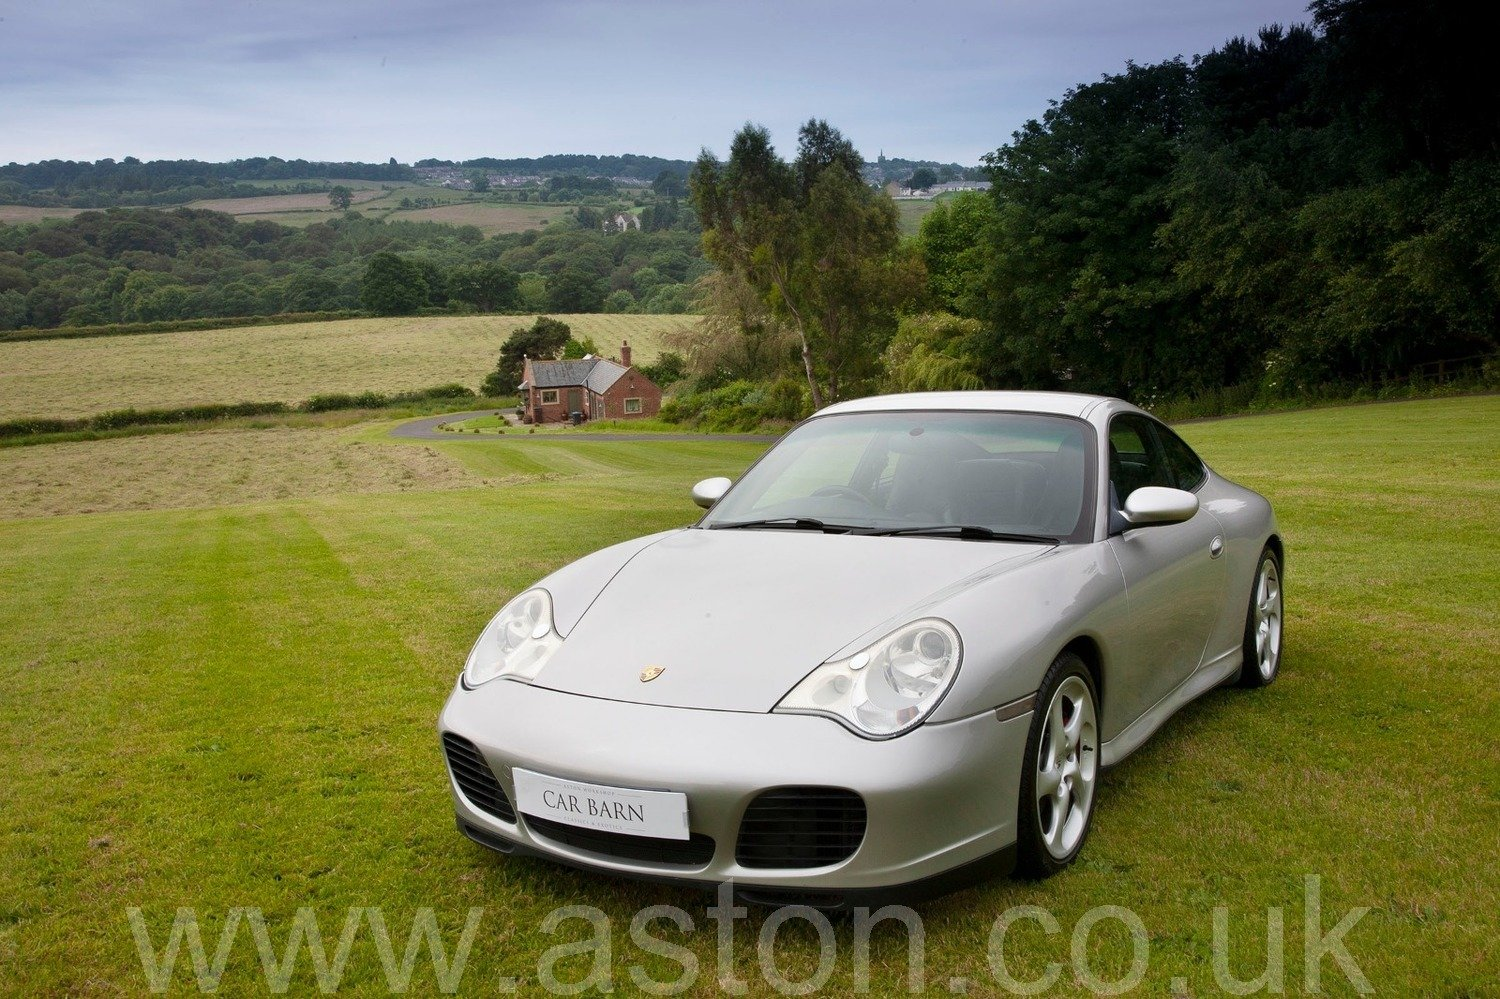 2003 Porsche 911 C4S Tiptronic For Sale (picture 6 of 6)